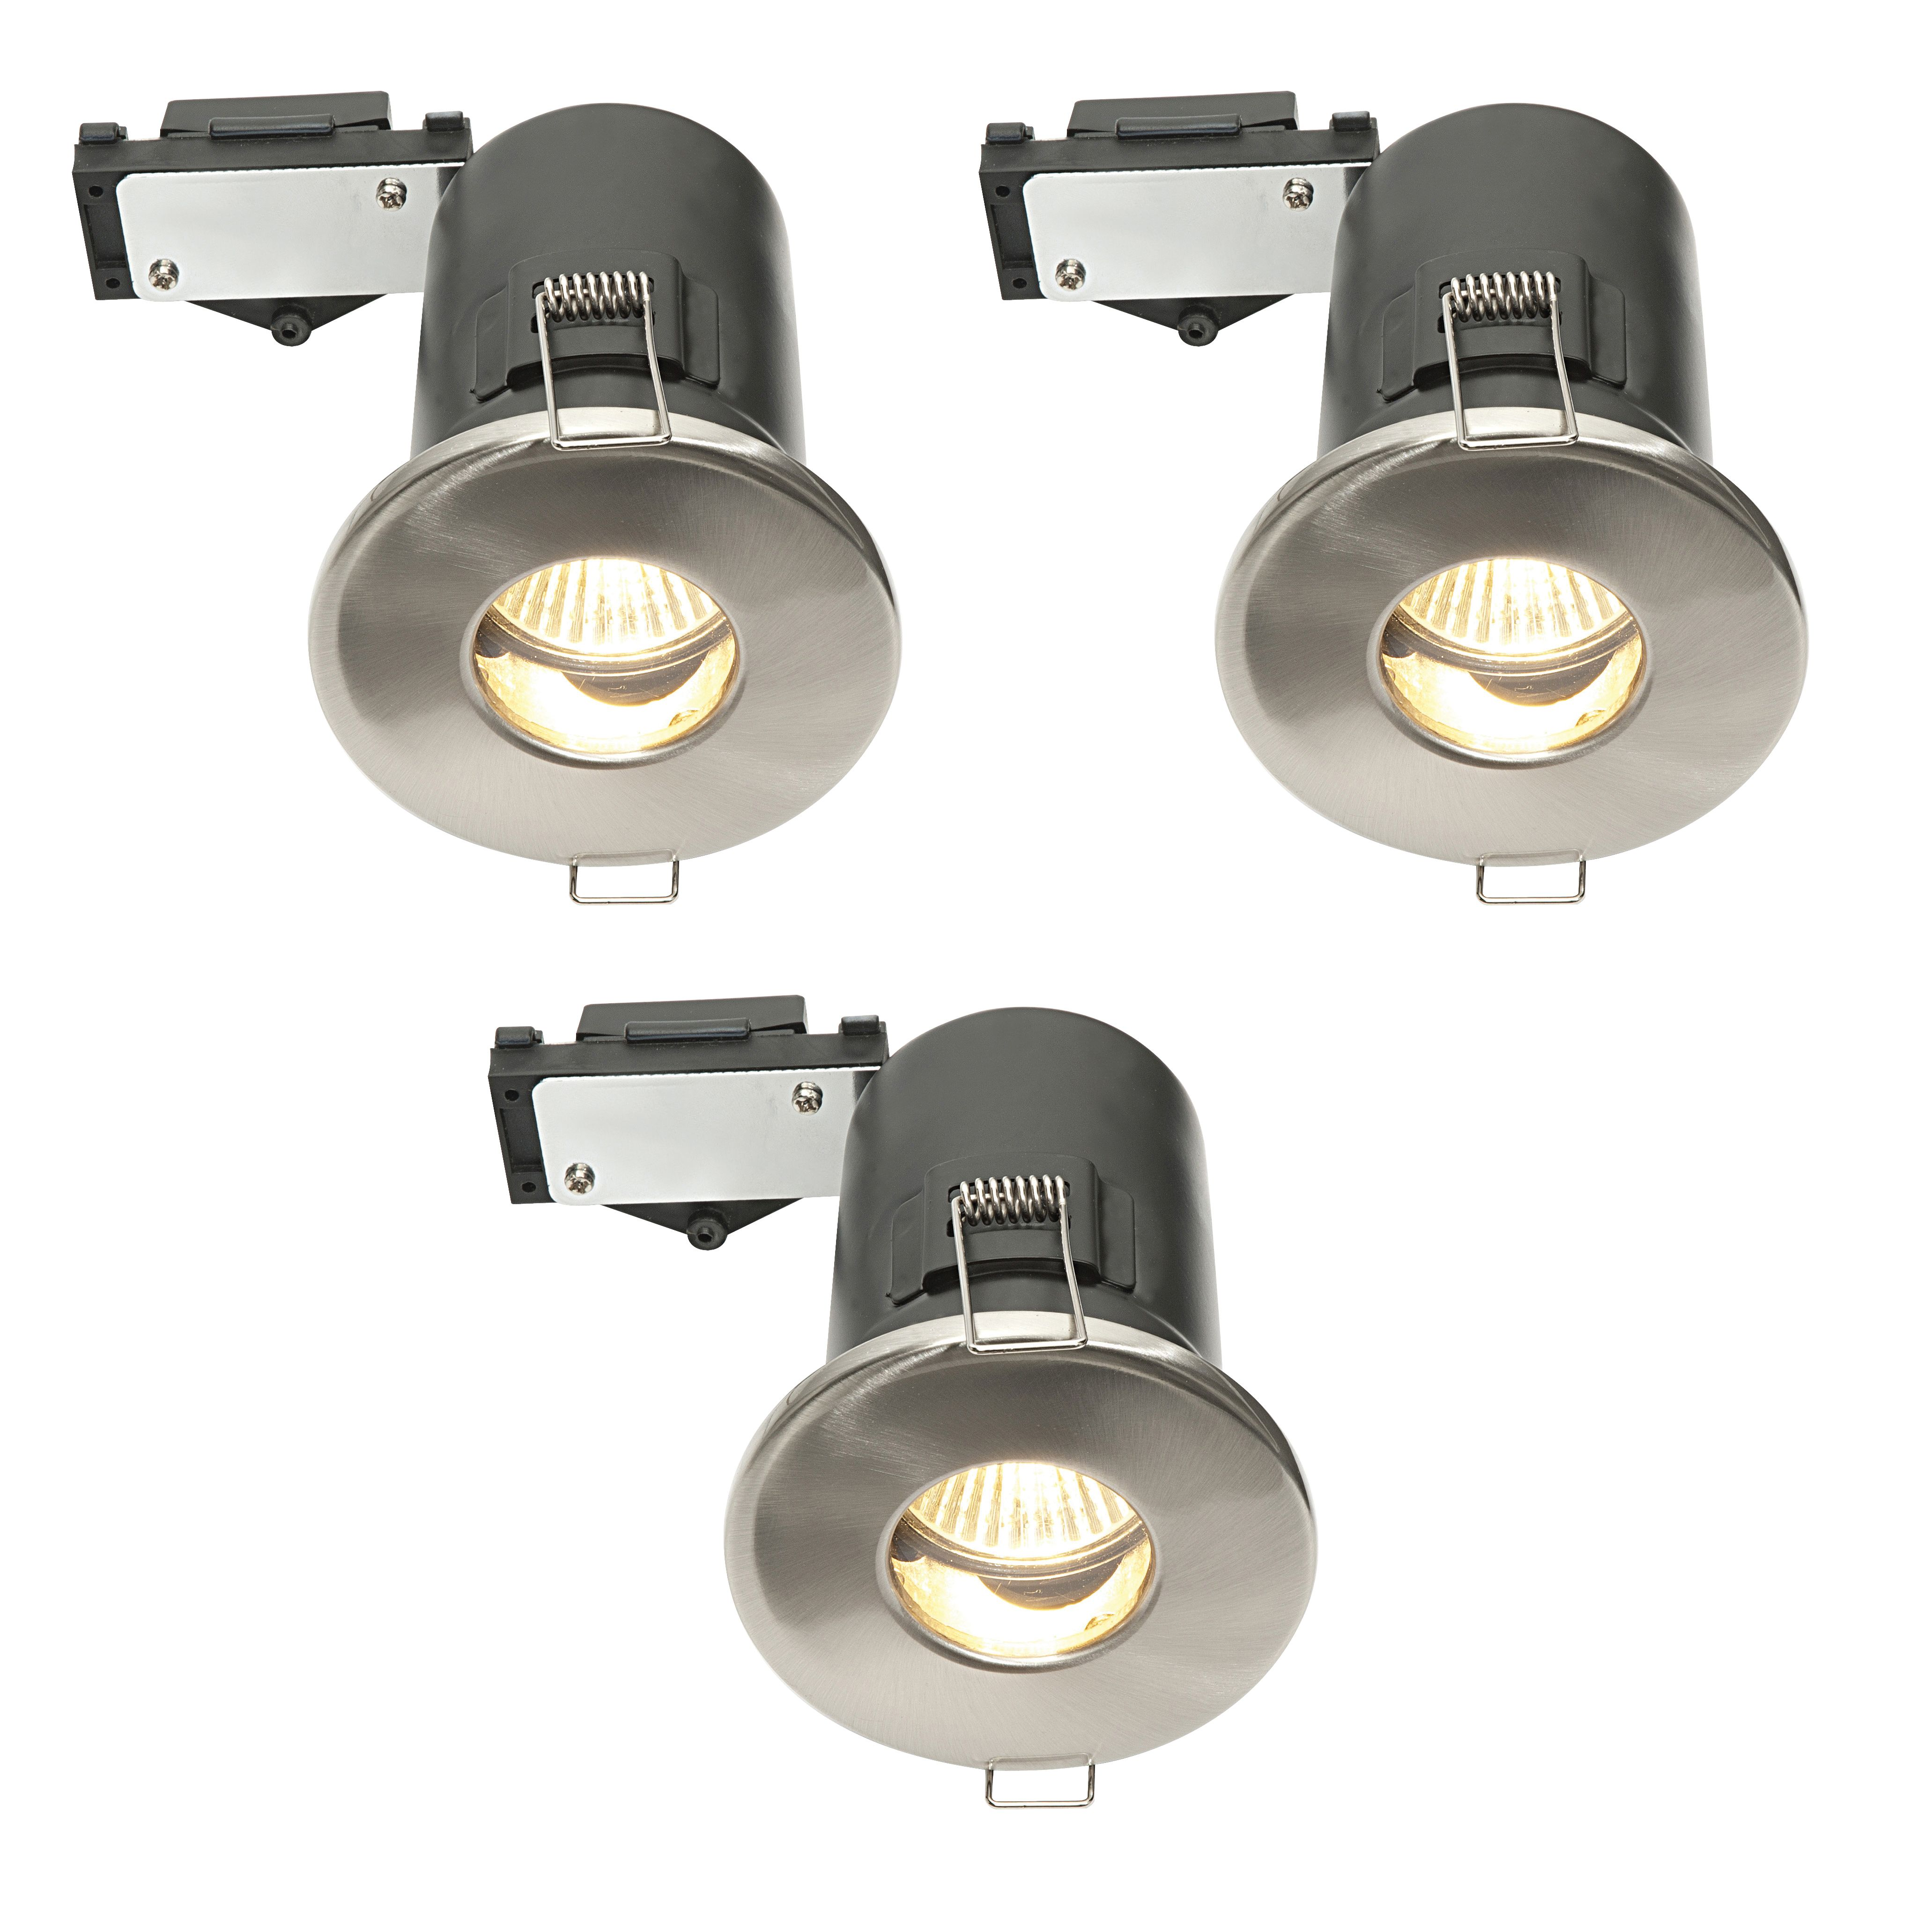 Exterior Garage Downlights: Diall Brushed Chrome Effect LED Fixed Downlight 3.5 W Ip65